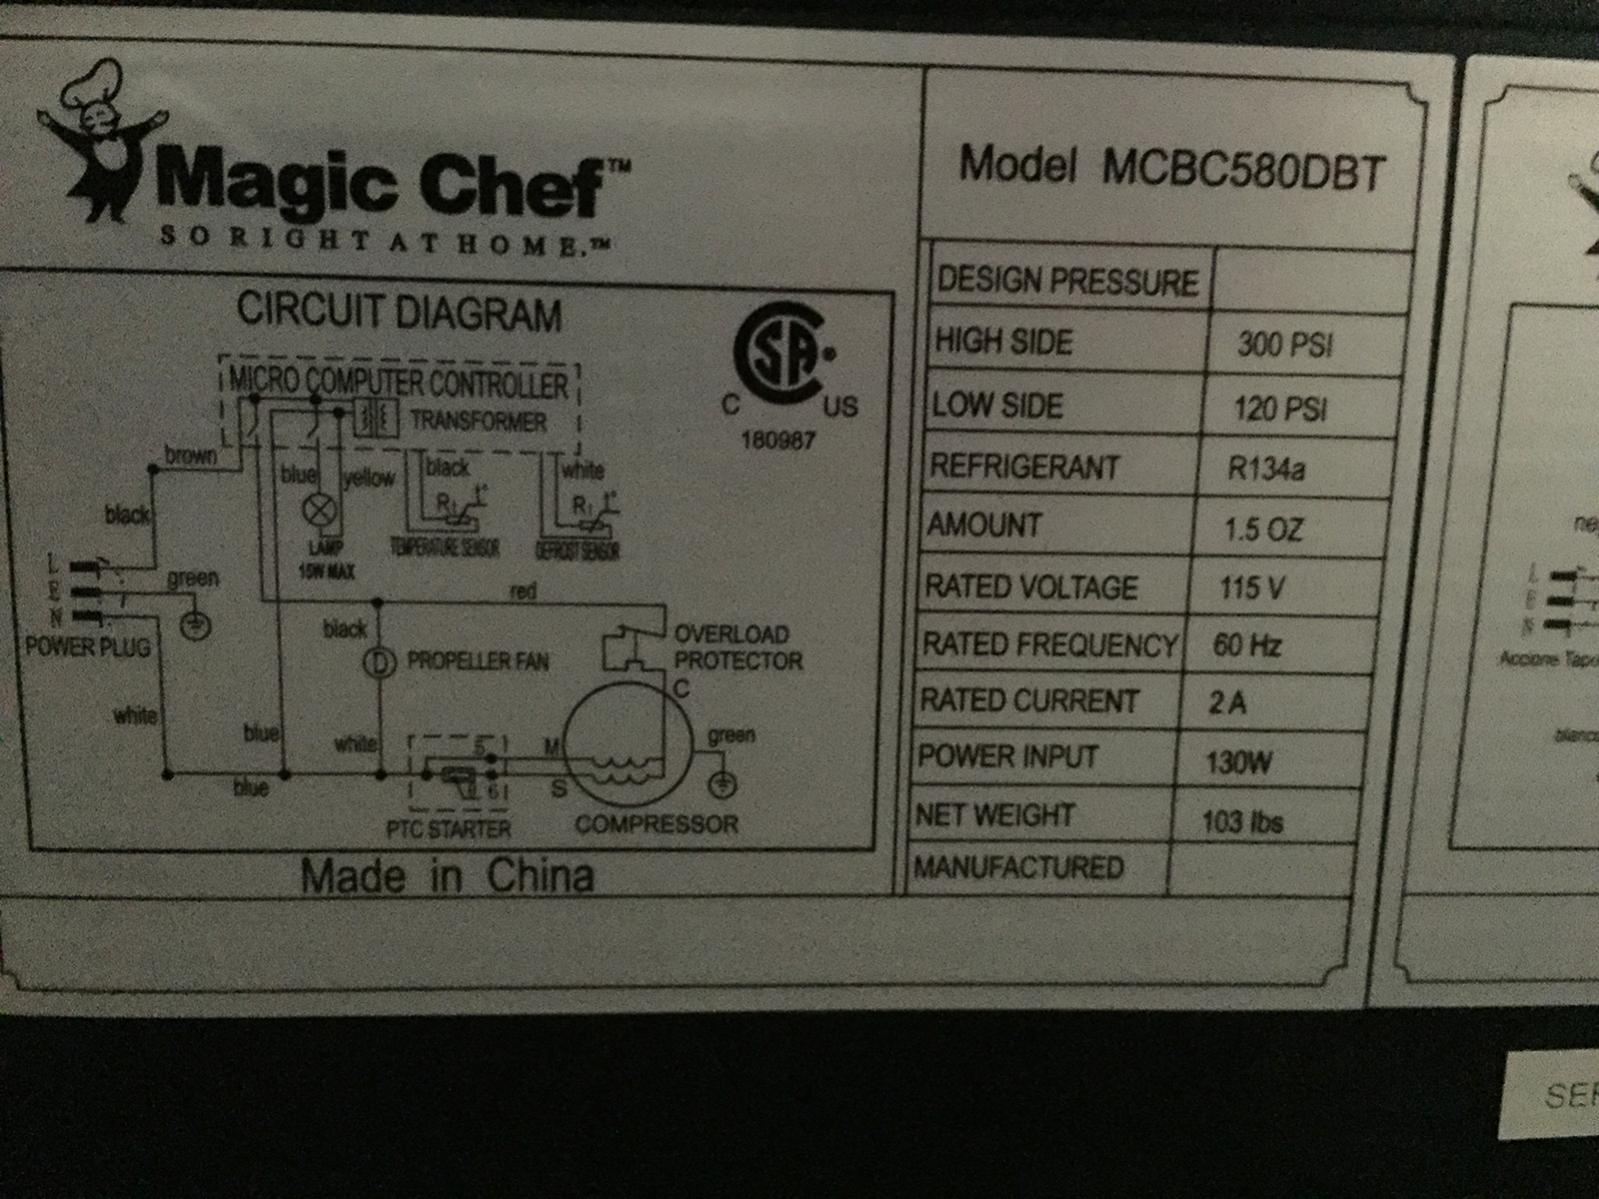 Temperature Controller Wiring Beer Wine Mead Magic Chef Microwave Diagram Beverage Cooler